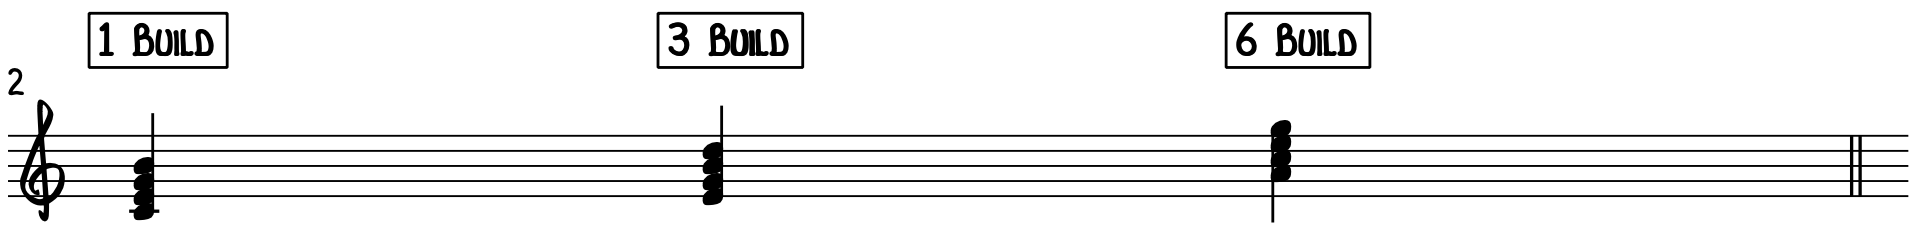 Improvise with Diatonic 7th chords—Primary Pairs